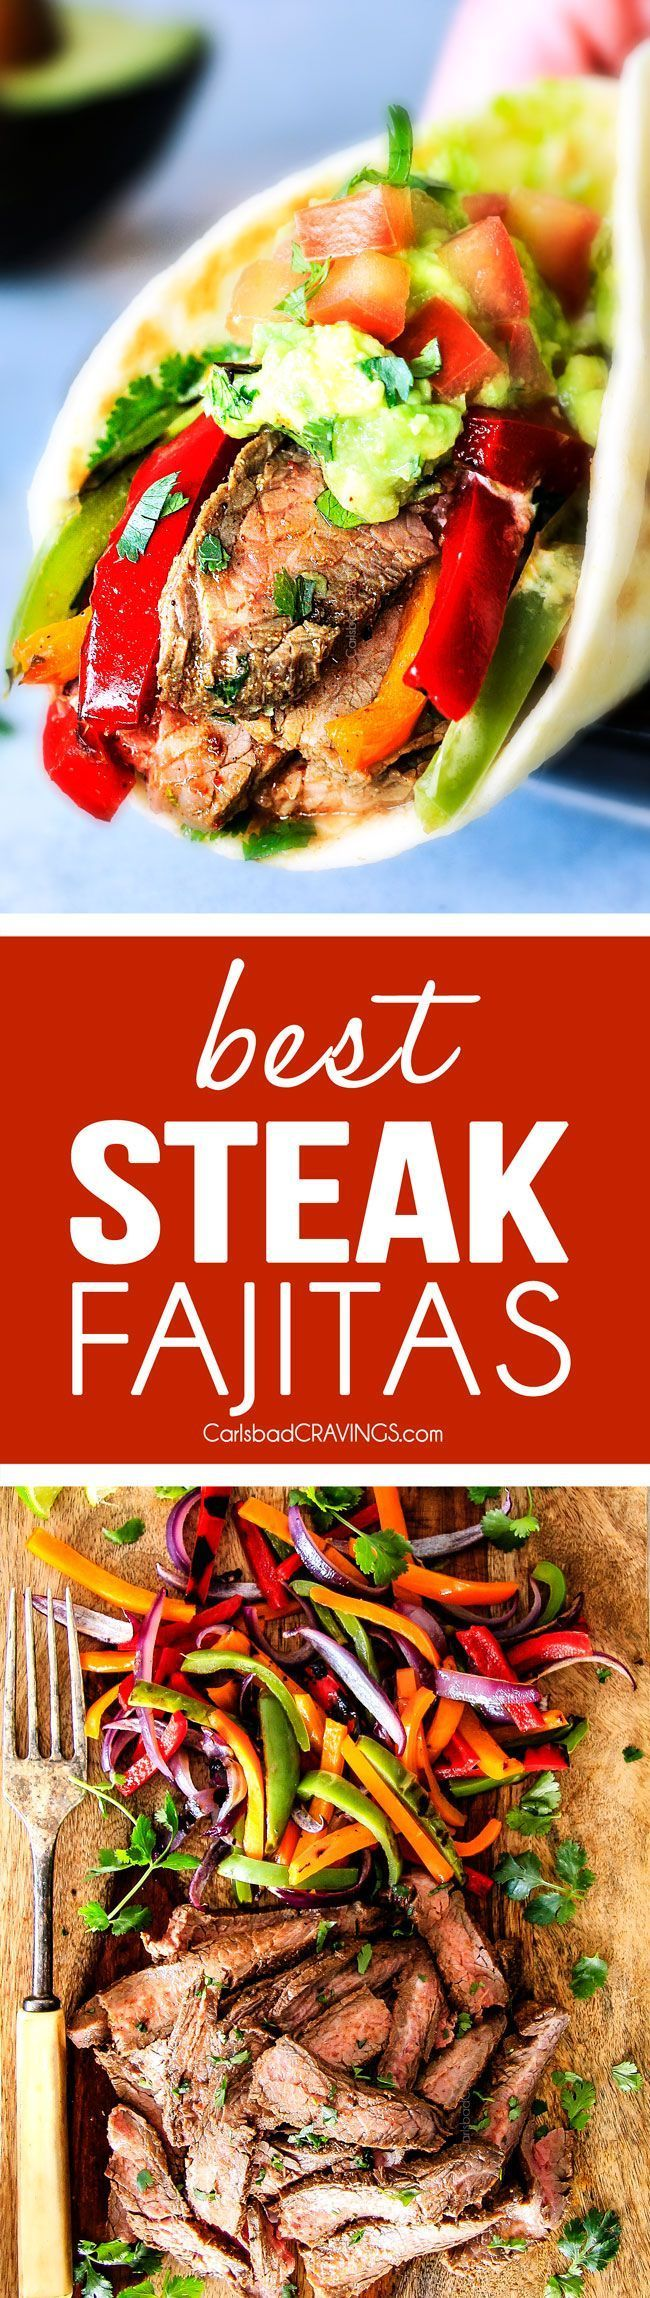 The absolute BEST tender, juicy Steak Fajitas - even more flavorful than any restaurant! The secret is the rich marinade AND a spice rub - holy yum! you will never make another fajita recipe again! #steakfajitamarinade The absolute BEST tender, juicy Steak Fajitas - even more flavorful than any restaurant! The secret is the rich marinade AND a spice rub - holy yum! you will never make another fajita recipe again! #beeffajitarecipe